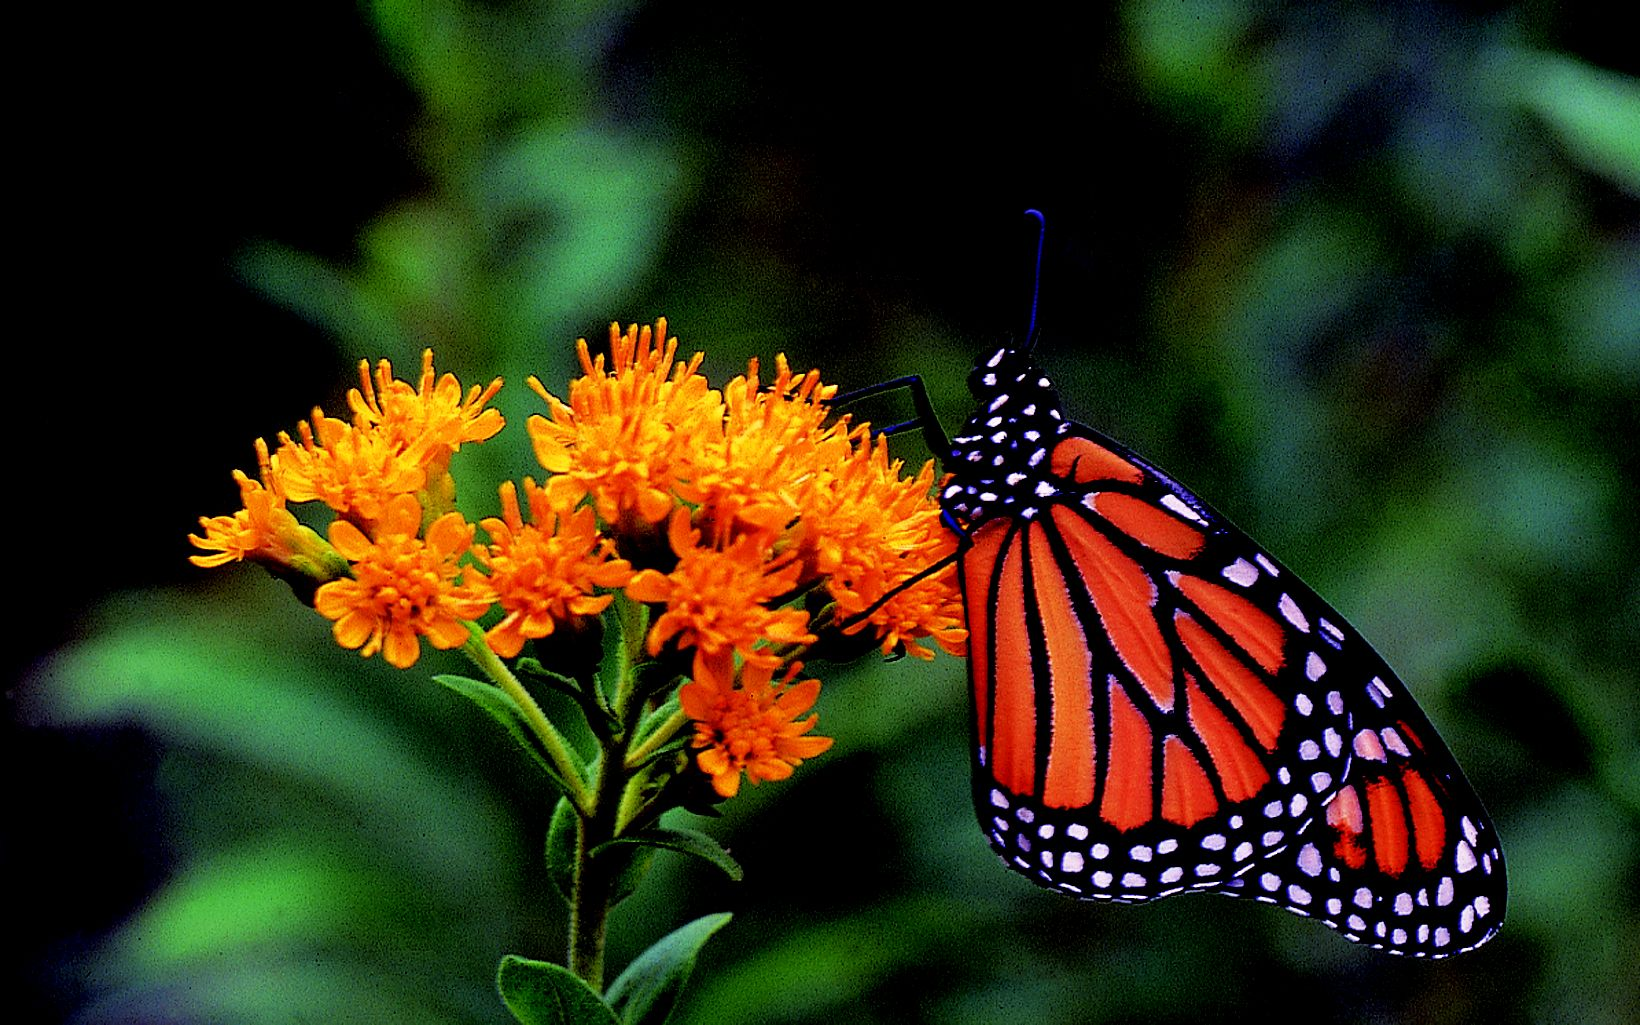 Monarchs and other butterflies feed on nectar from goldenrods and other wildflowers at Chiwaukee Prairie.